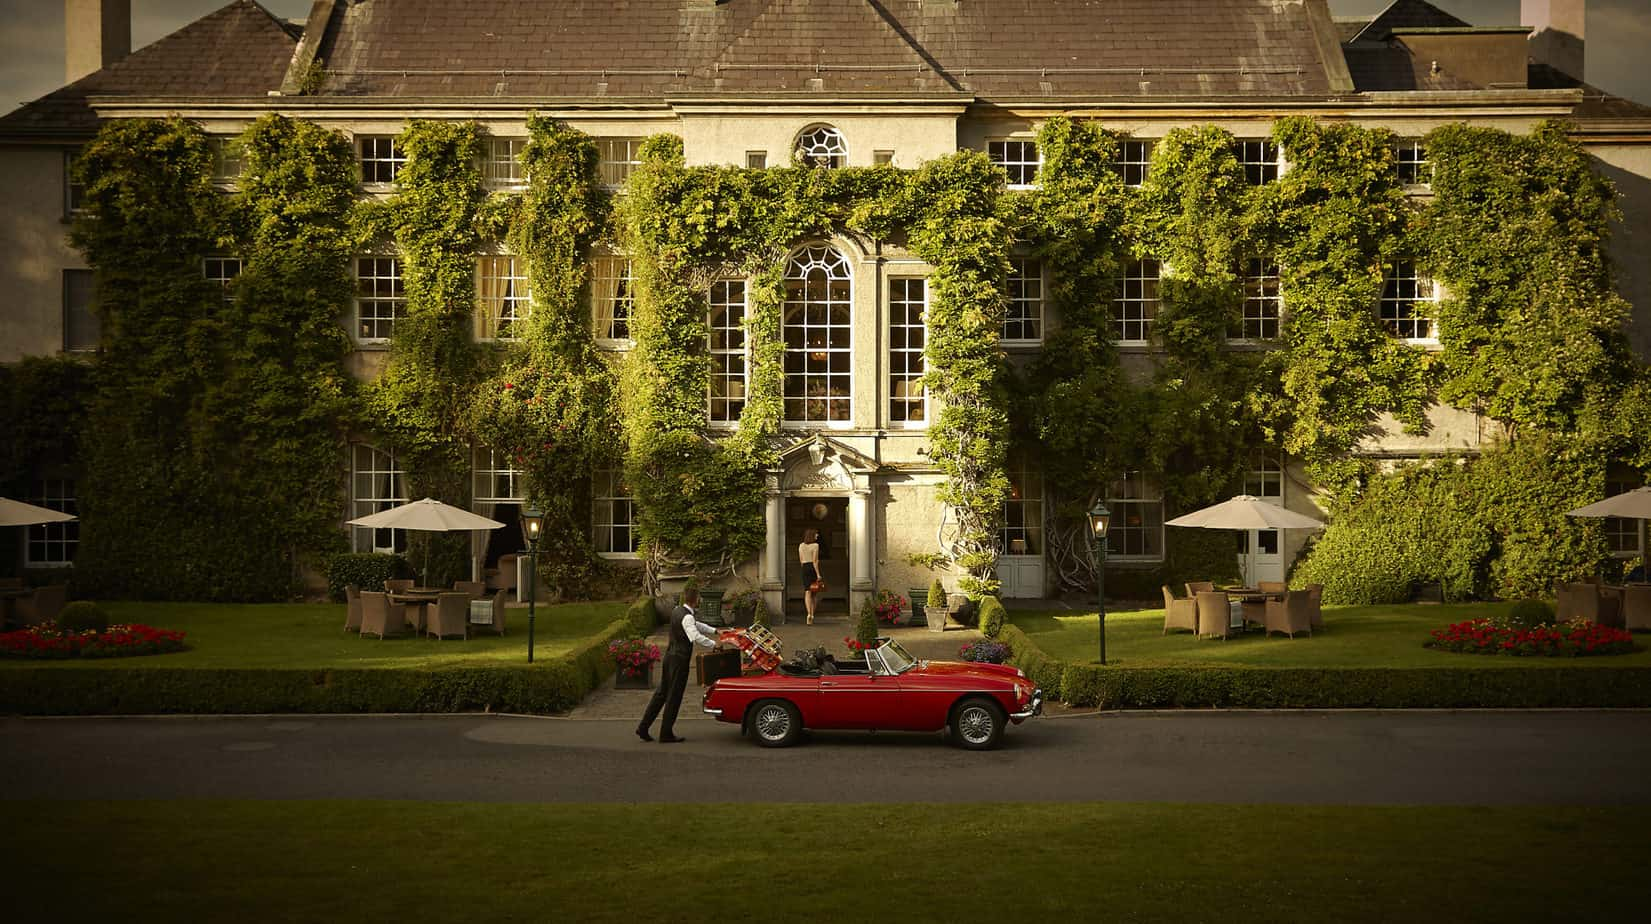 Luxurious Hotels in Kilkenny, Kilkenny Activity Centre